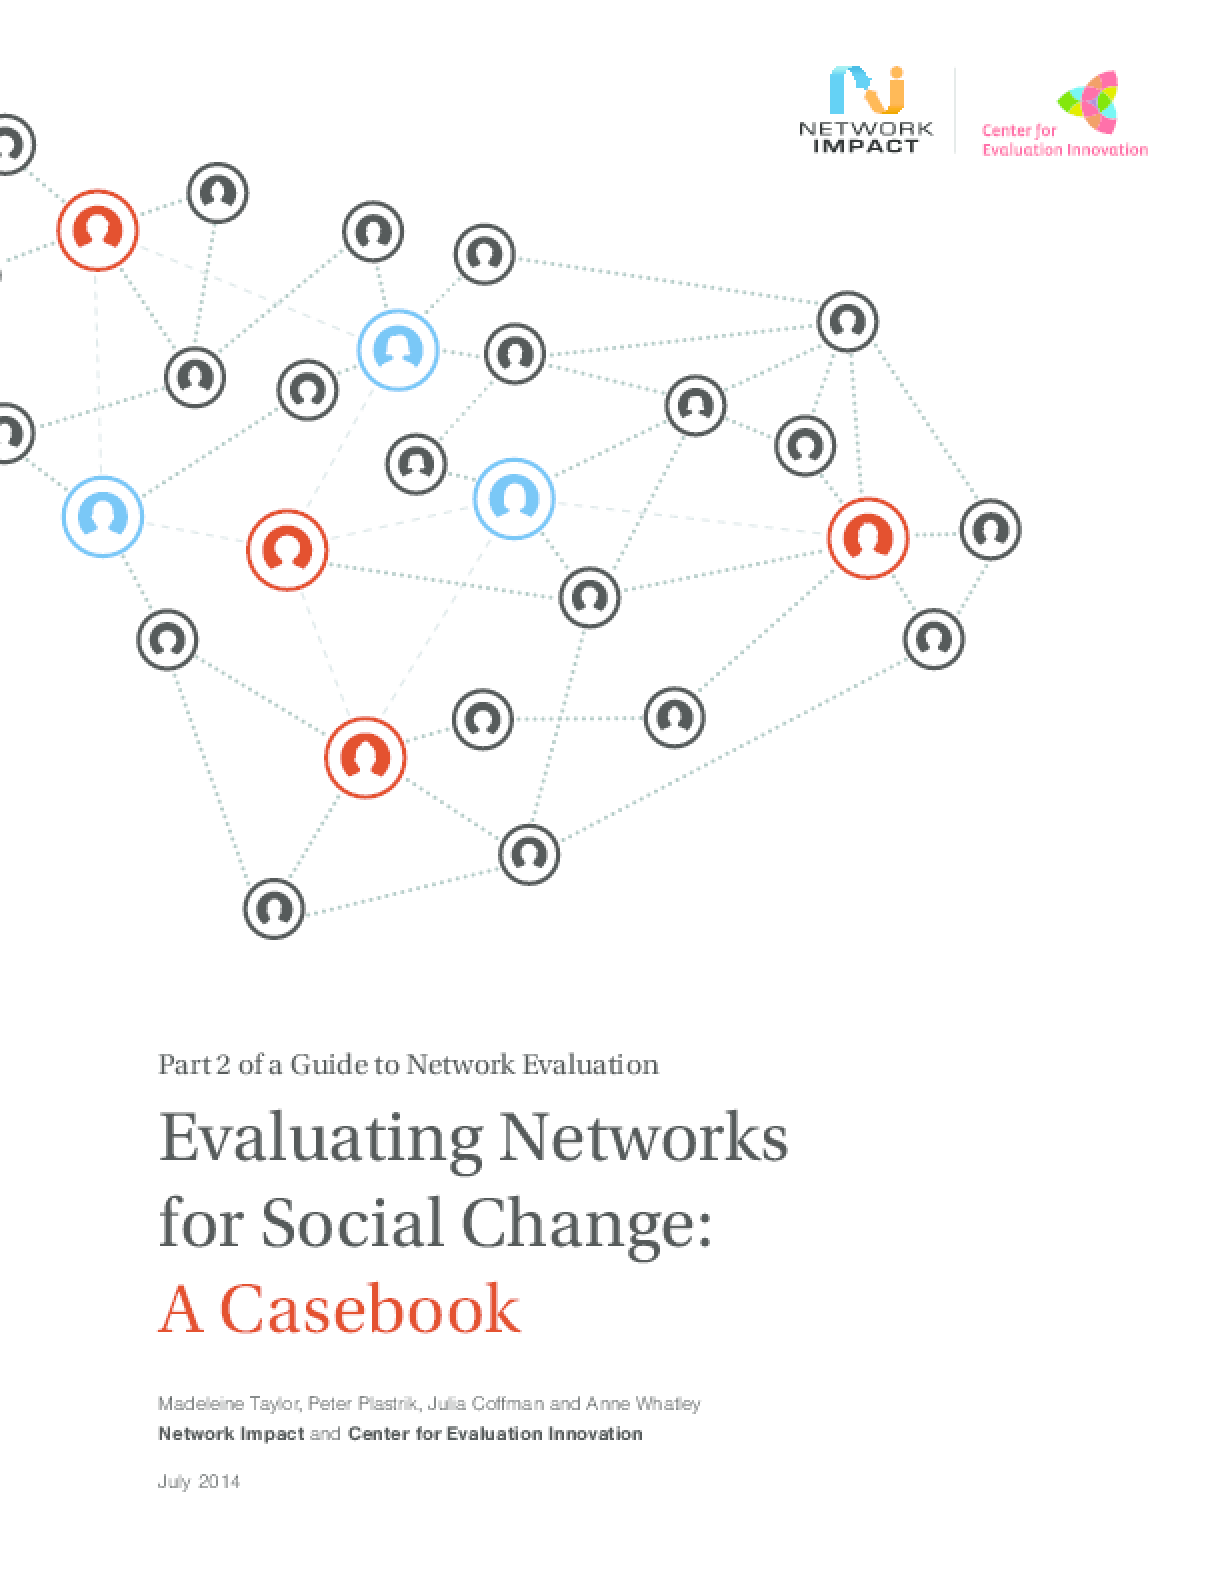 Evaluating Networks for Social Change: A Casebook - Part 2 of a Guide to Network Evaluation